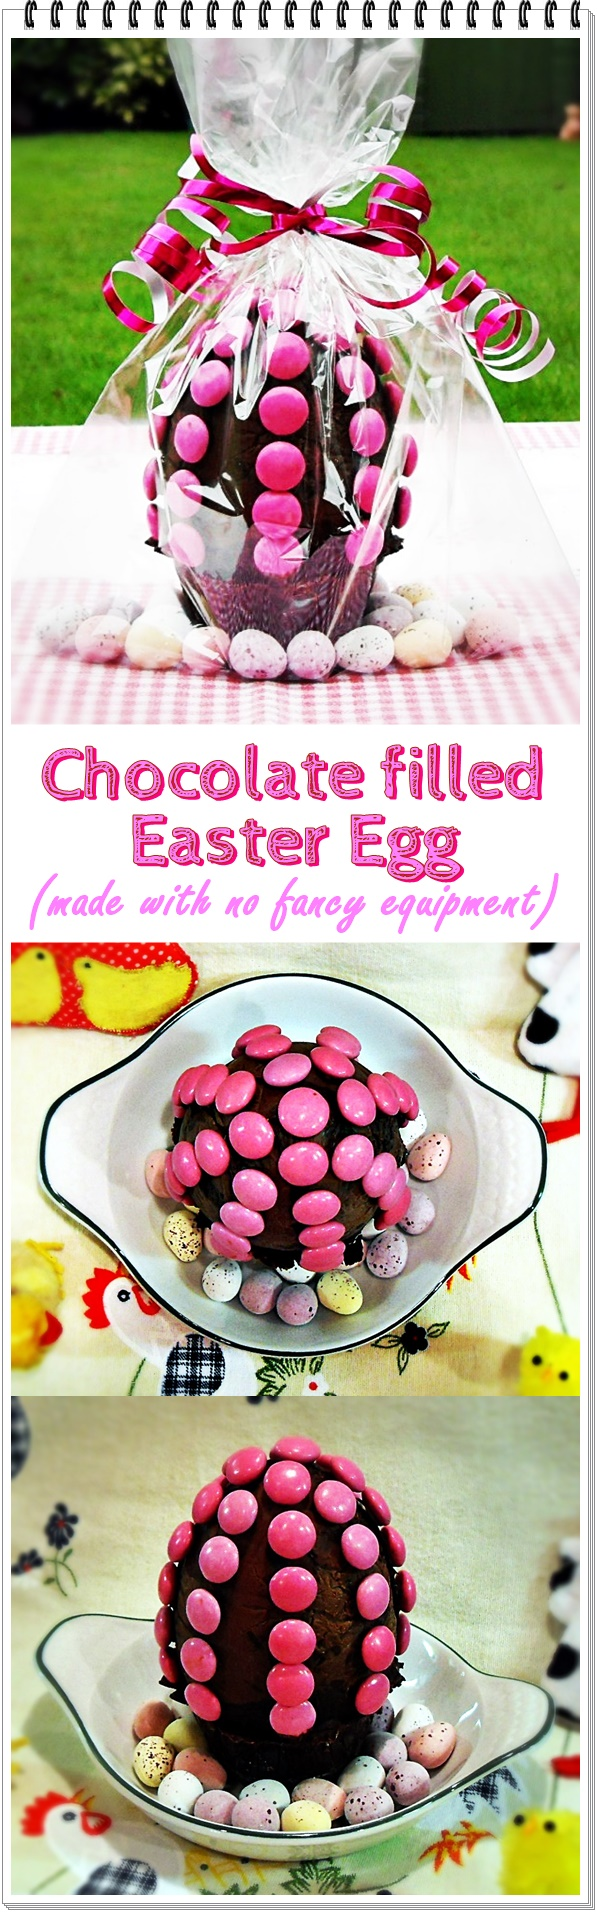 Chocolate filled Easter Egg (made with no fancy equipment) @fabfood4all